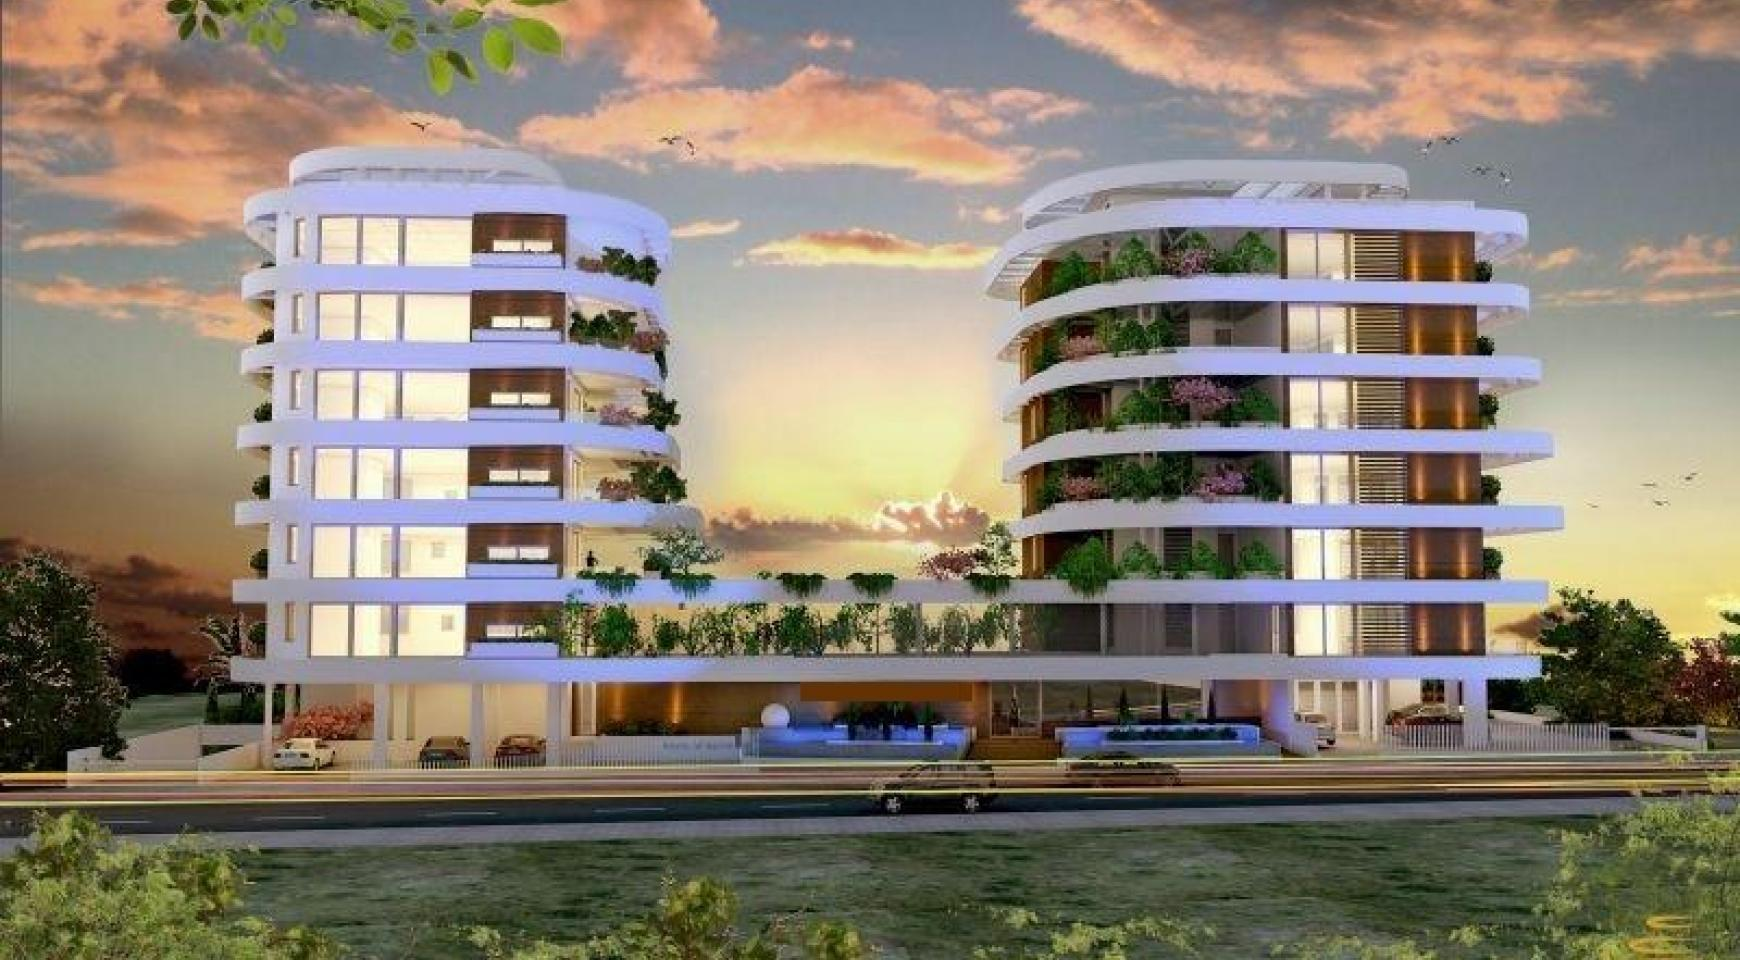 New 3 Bedroom Apartment with Private Garden - 3